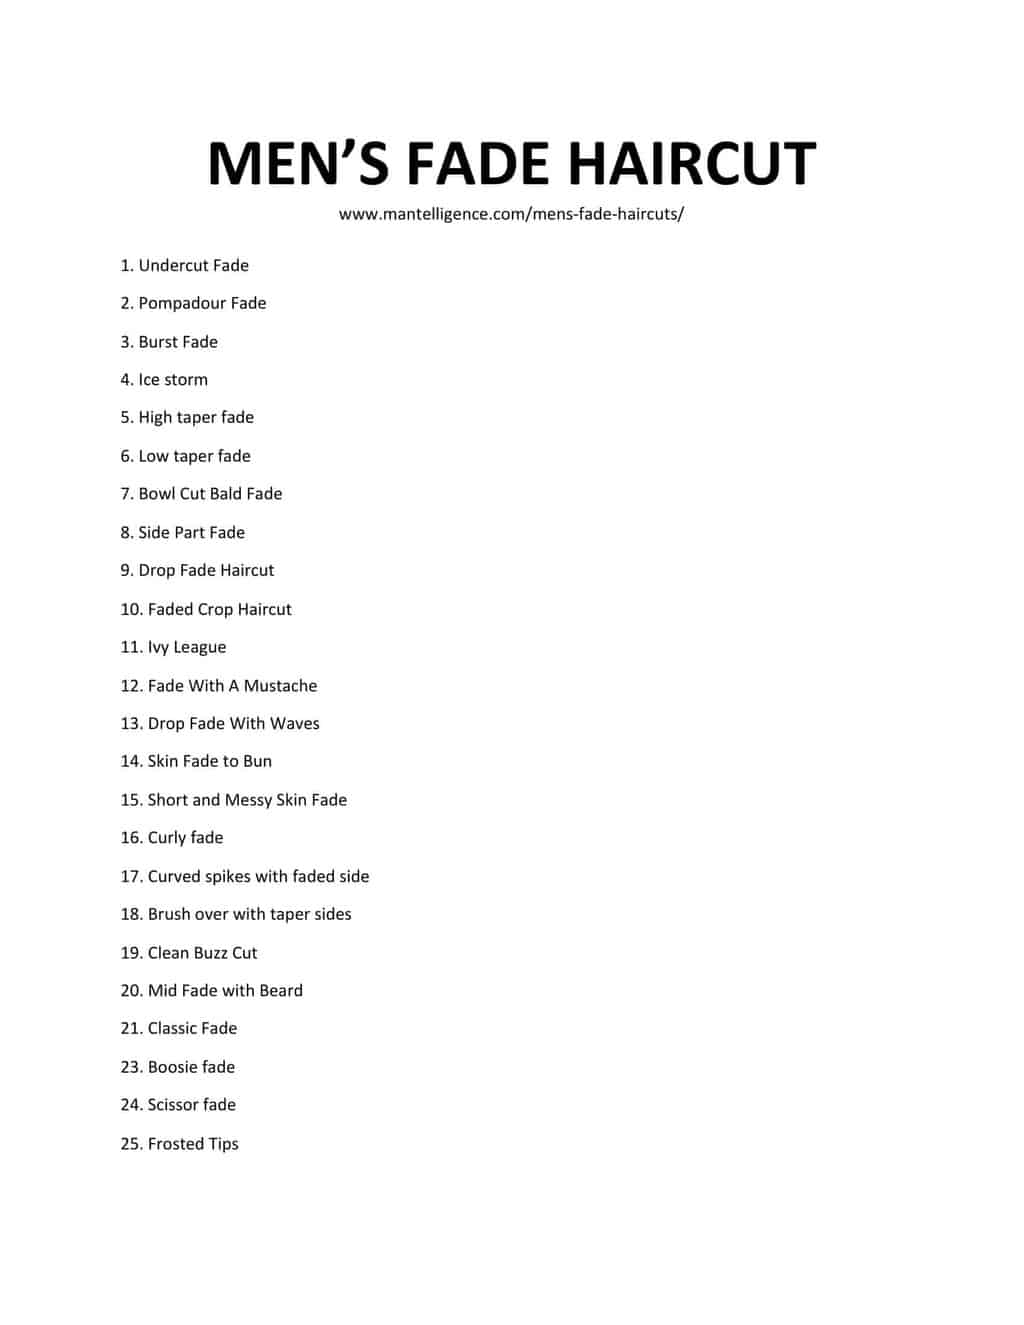 Downloadable List of Men's Fade Haircut